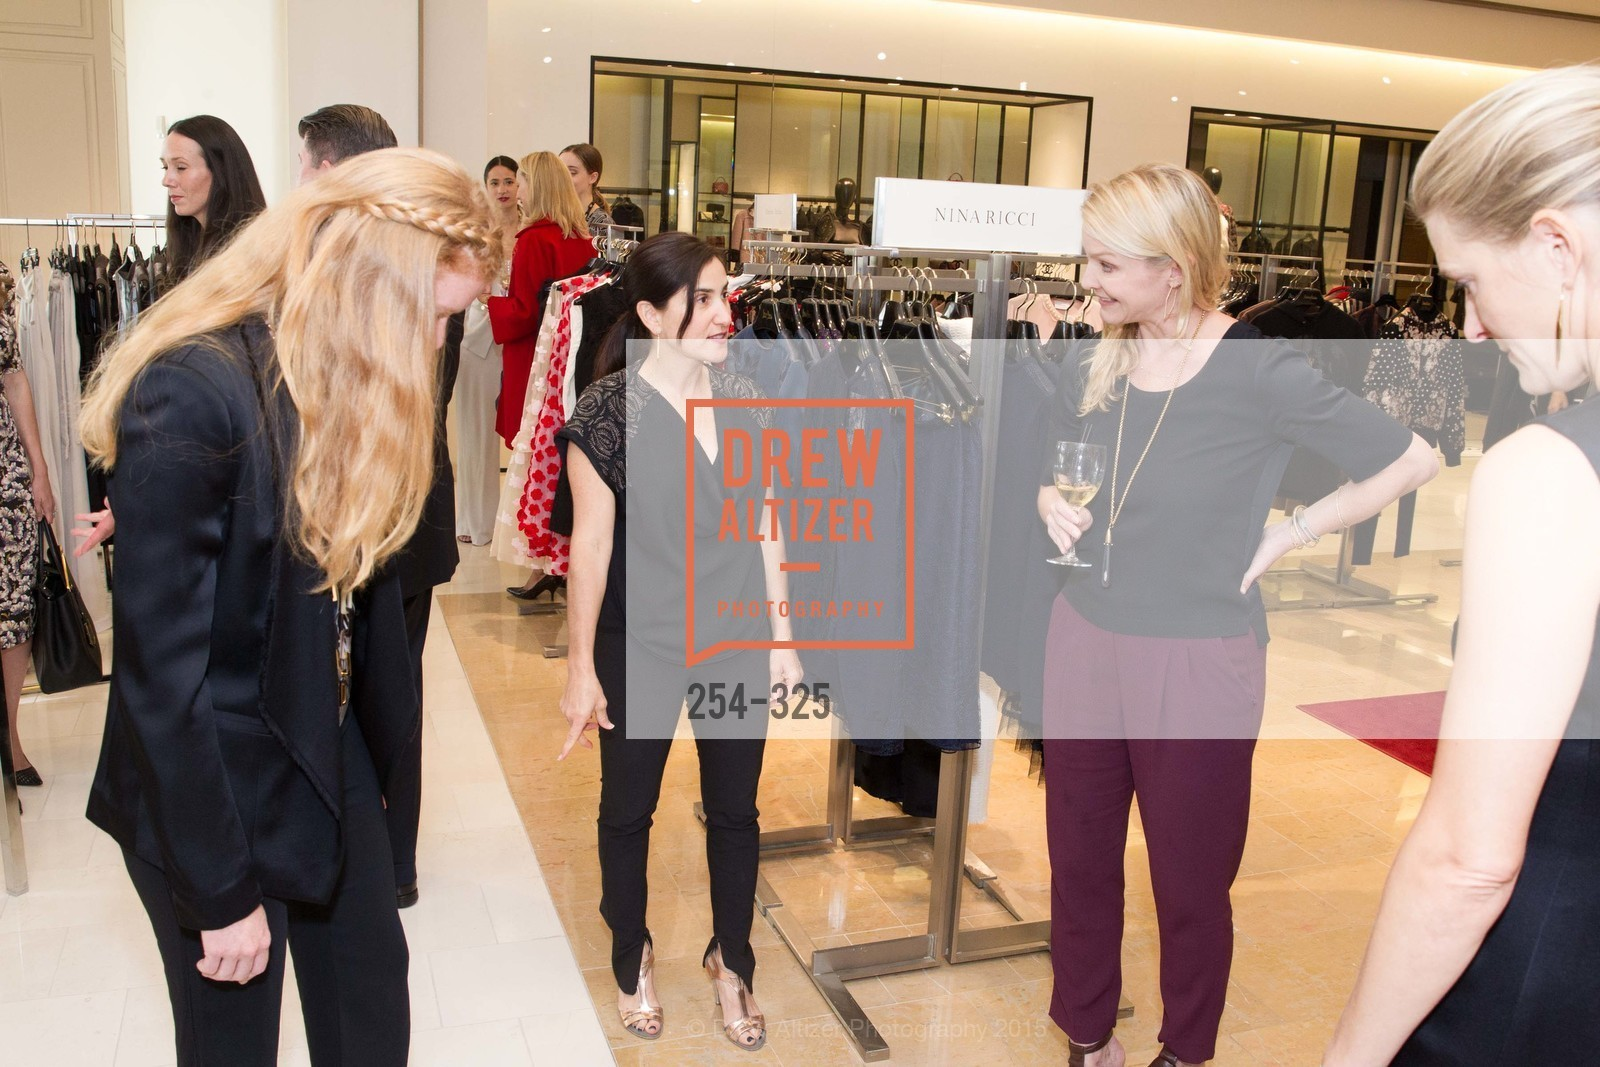 Zem Joaquin, Kristy Caylor, Maiyet Reception at Neiman Marcus, Neiman Marcus, September 29th, 2015,Drew Altizer, Drew Altizer Photography, full-service agency, private events, San Francisco photographer, photographer california